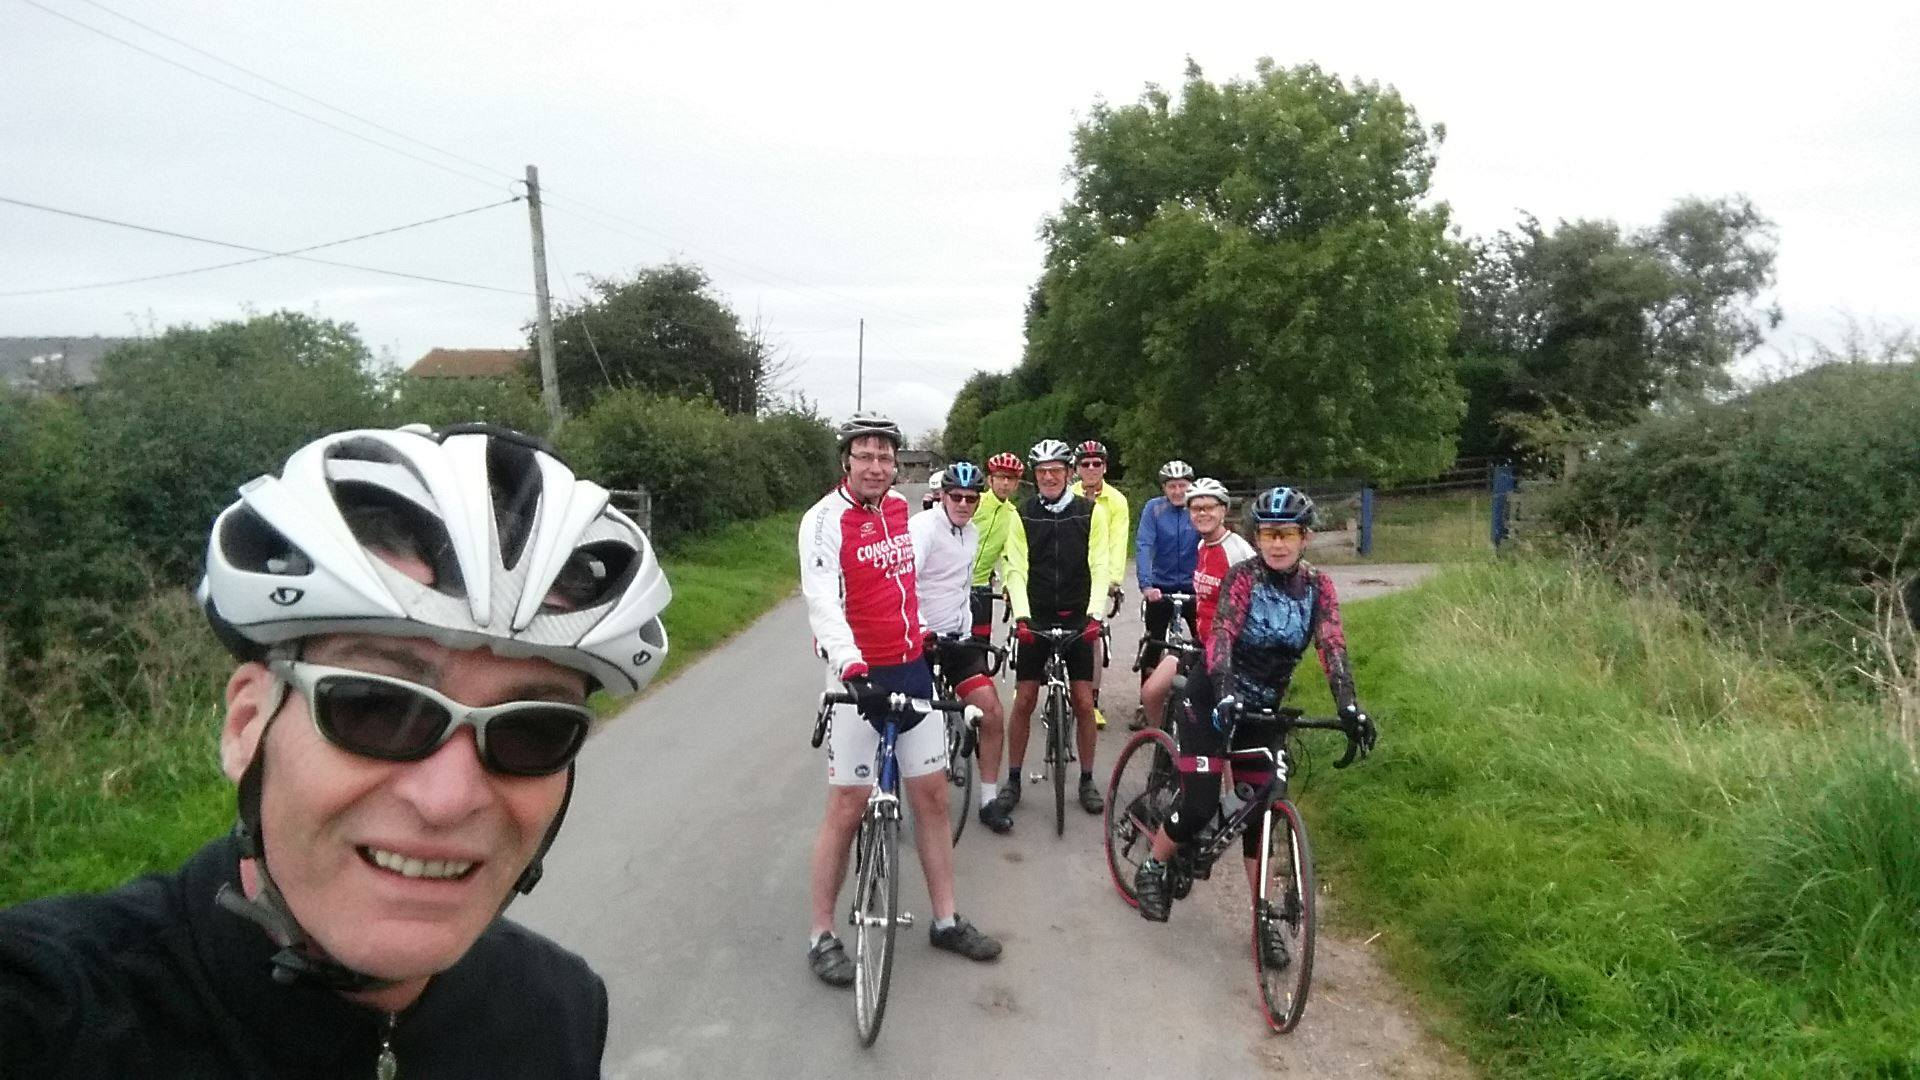 Congleton Cycling Club on the road from Cheddleton